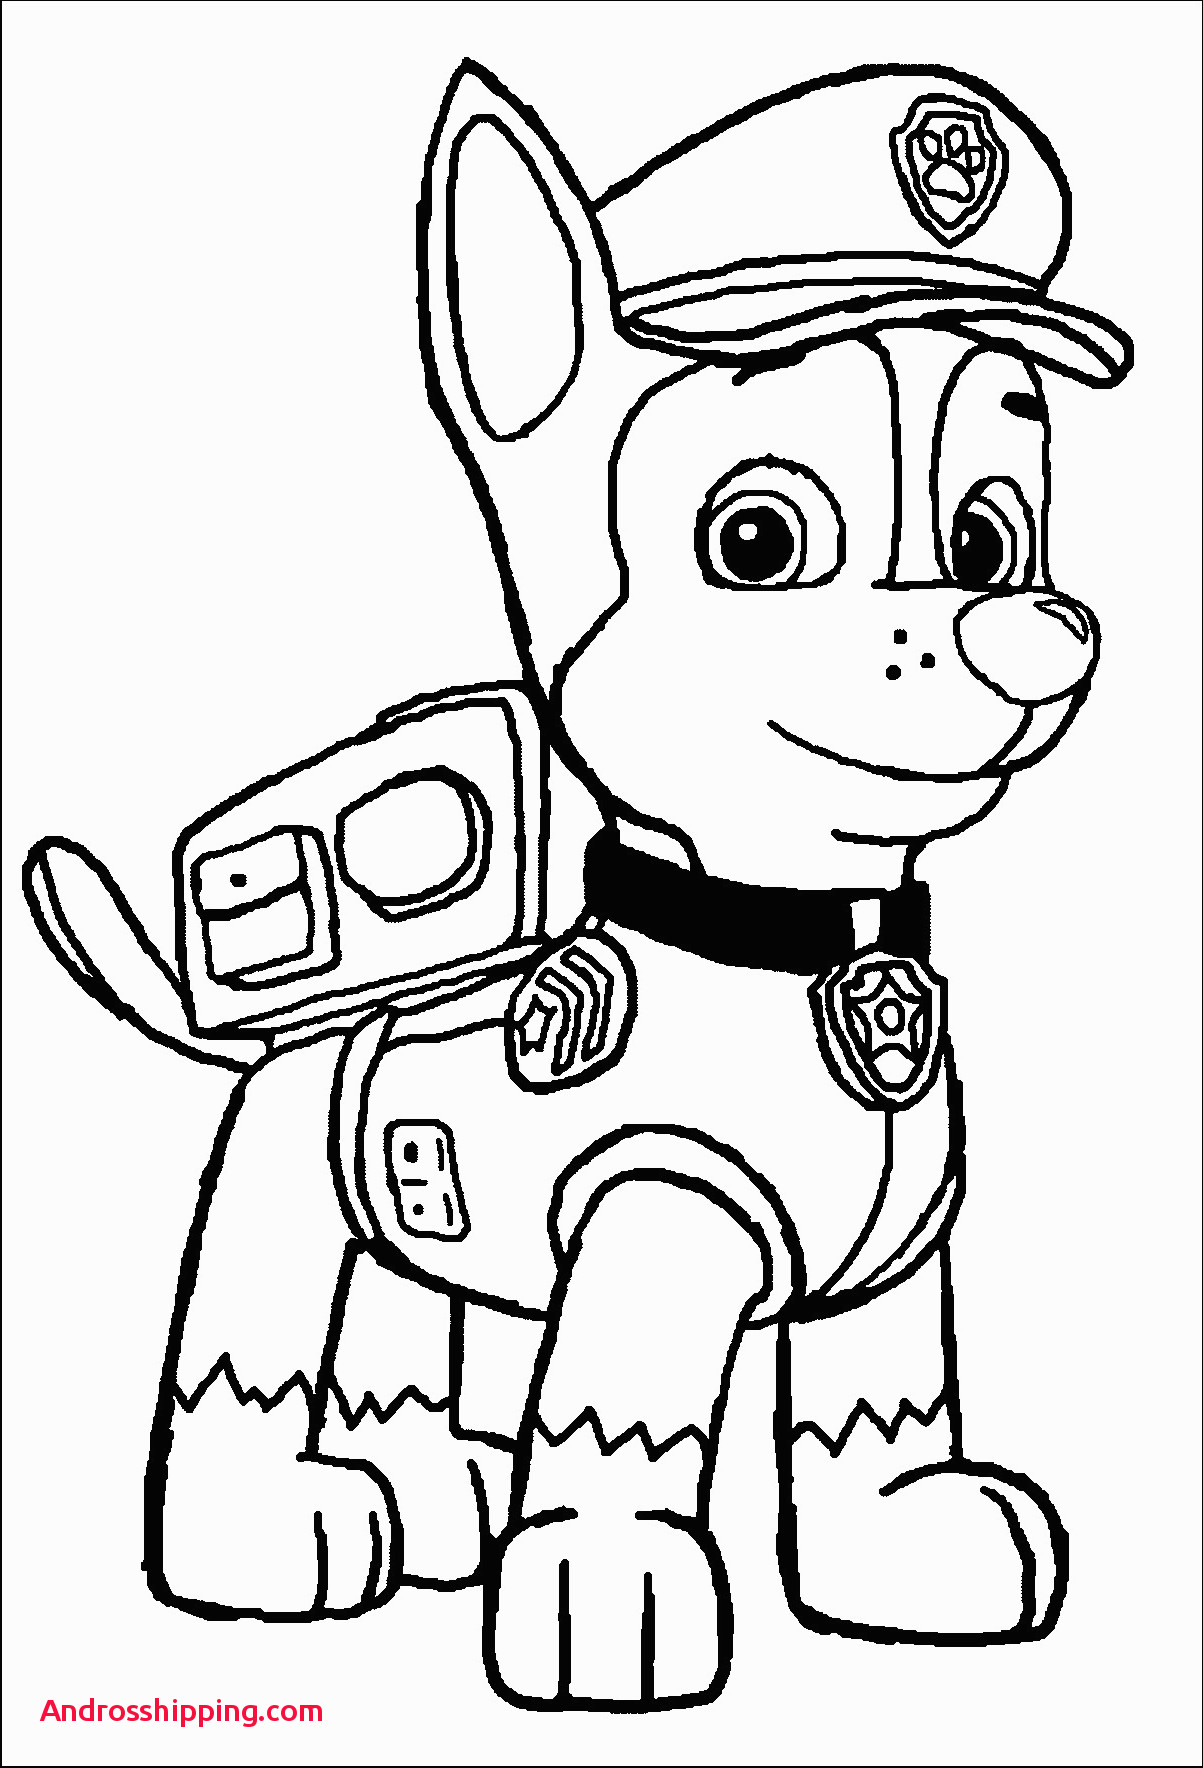 25 Excellent Picture Of Chase Paw Patrol Coloring Page